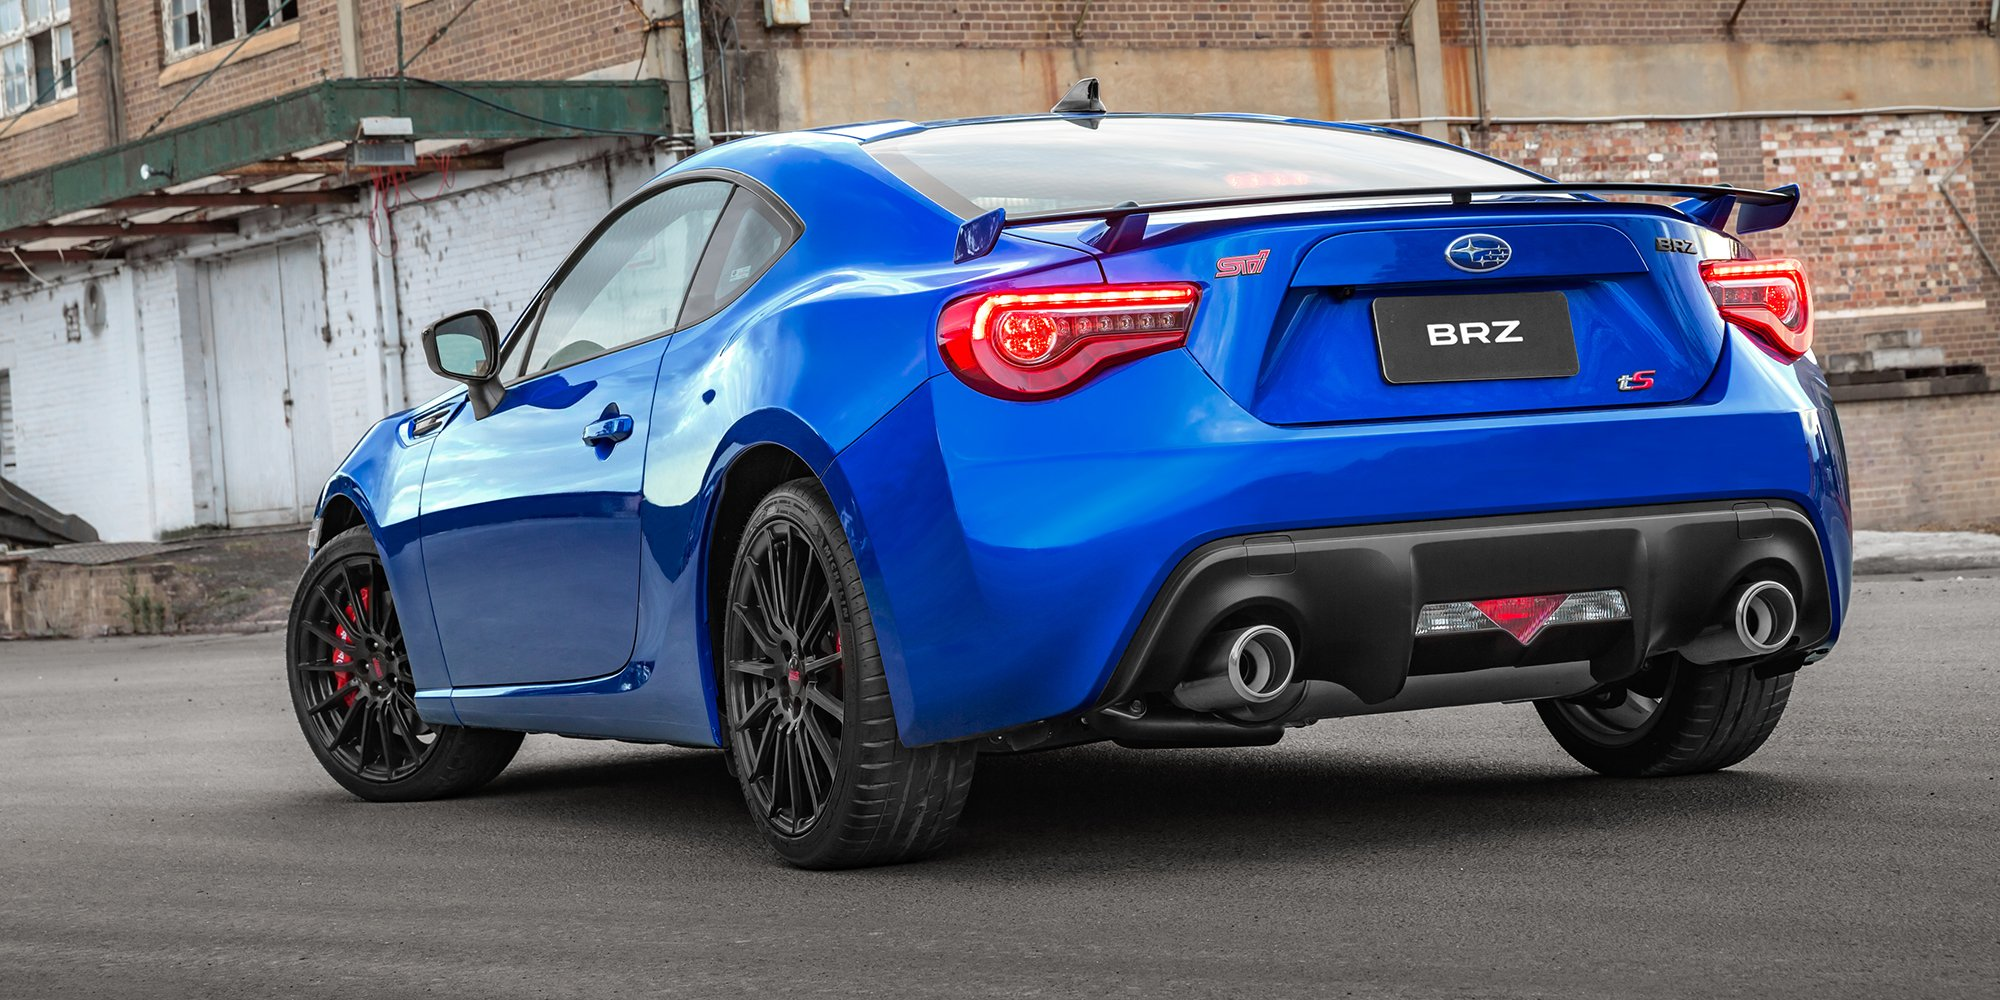 2018 Subaru Brz Pricing And Specs Photos